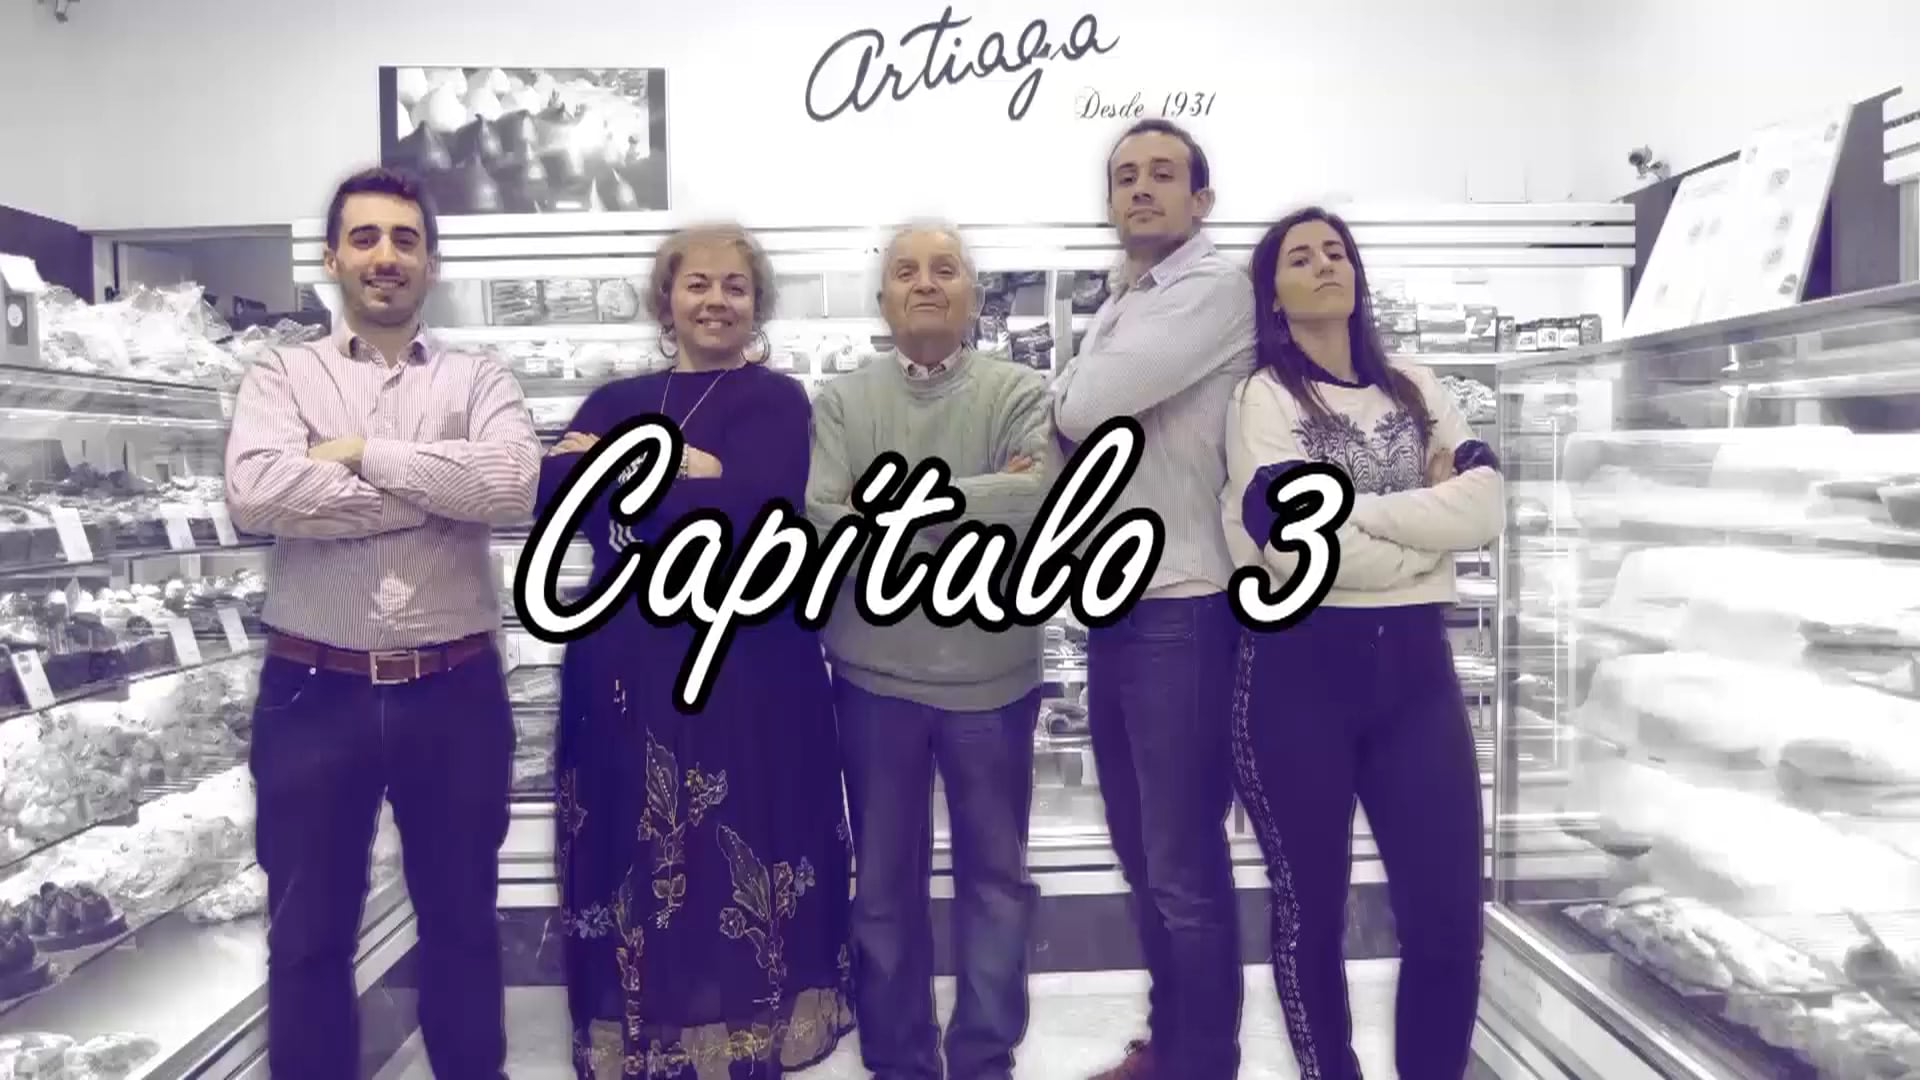 CAPITULO 03